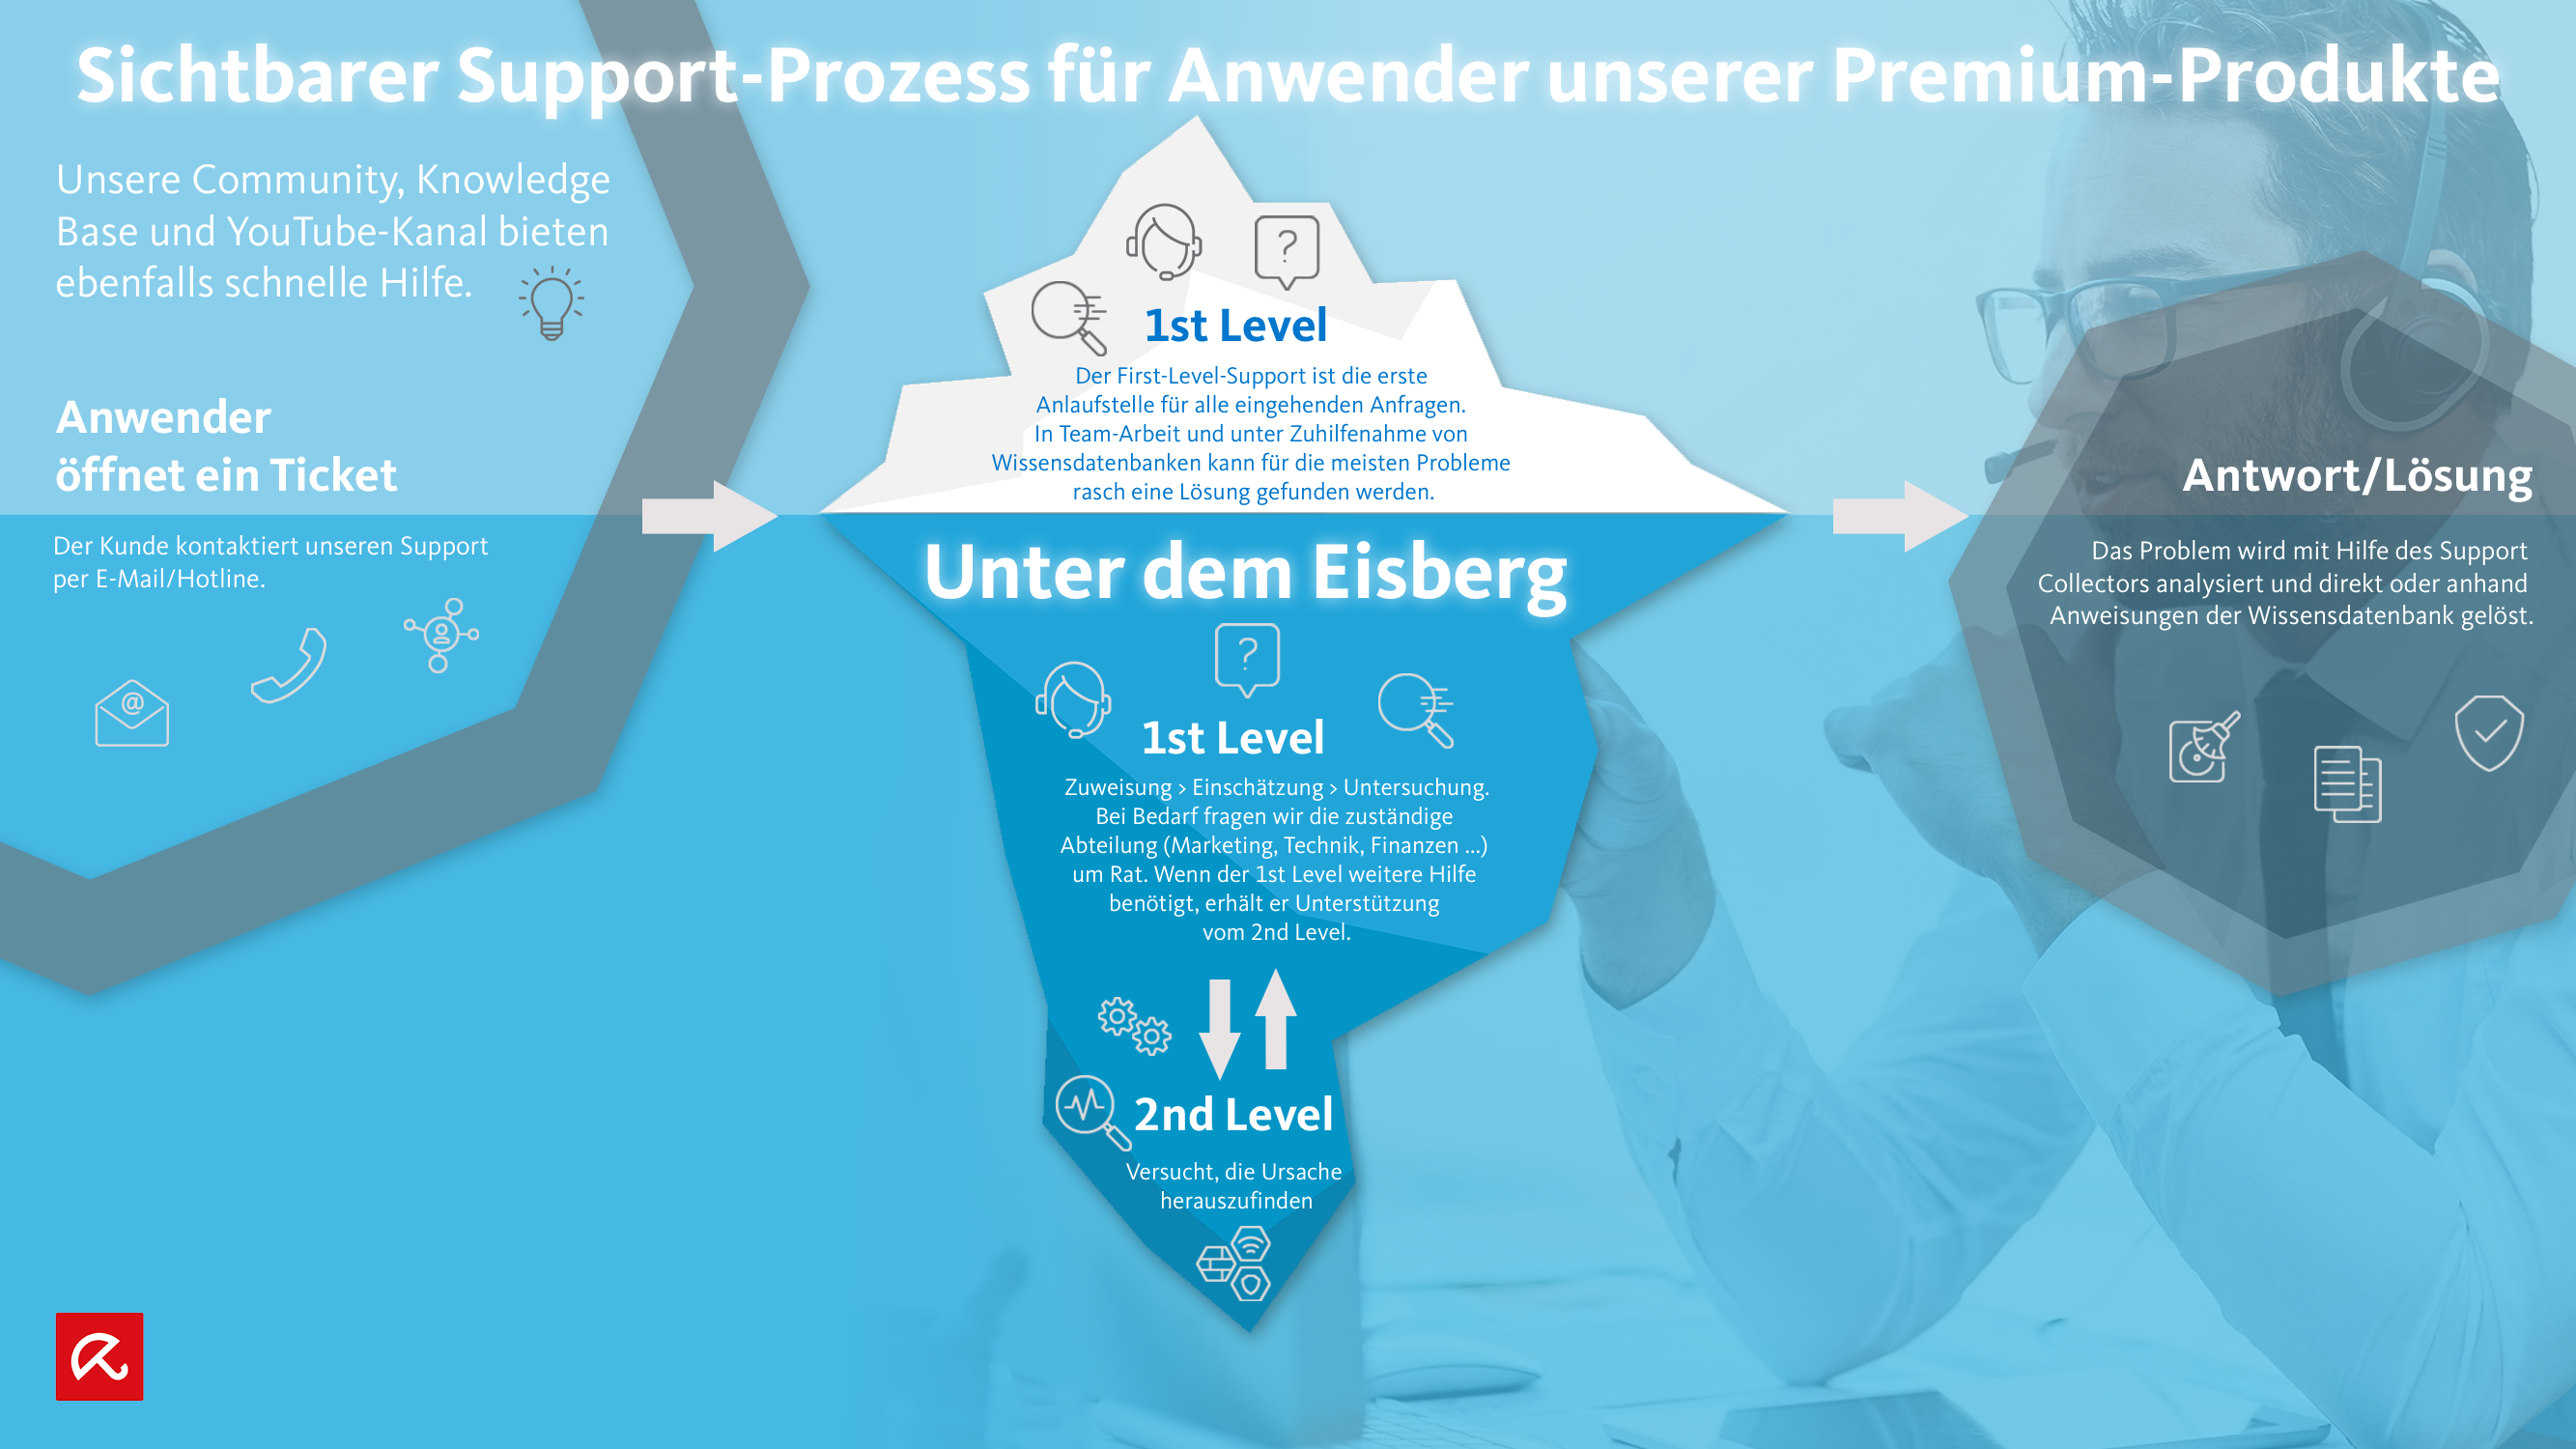 Support-process_de.png